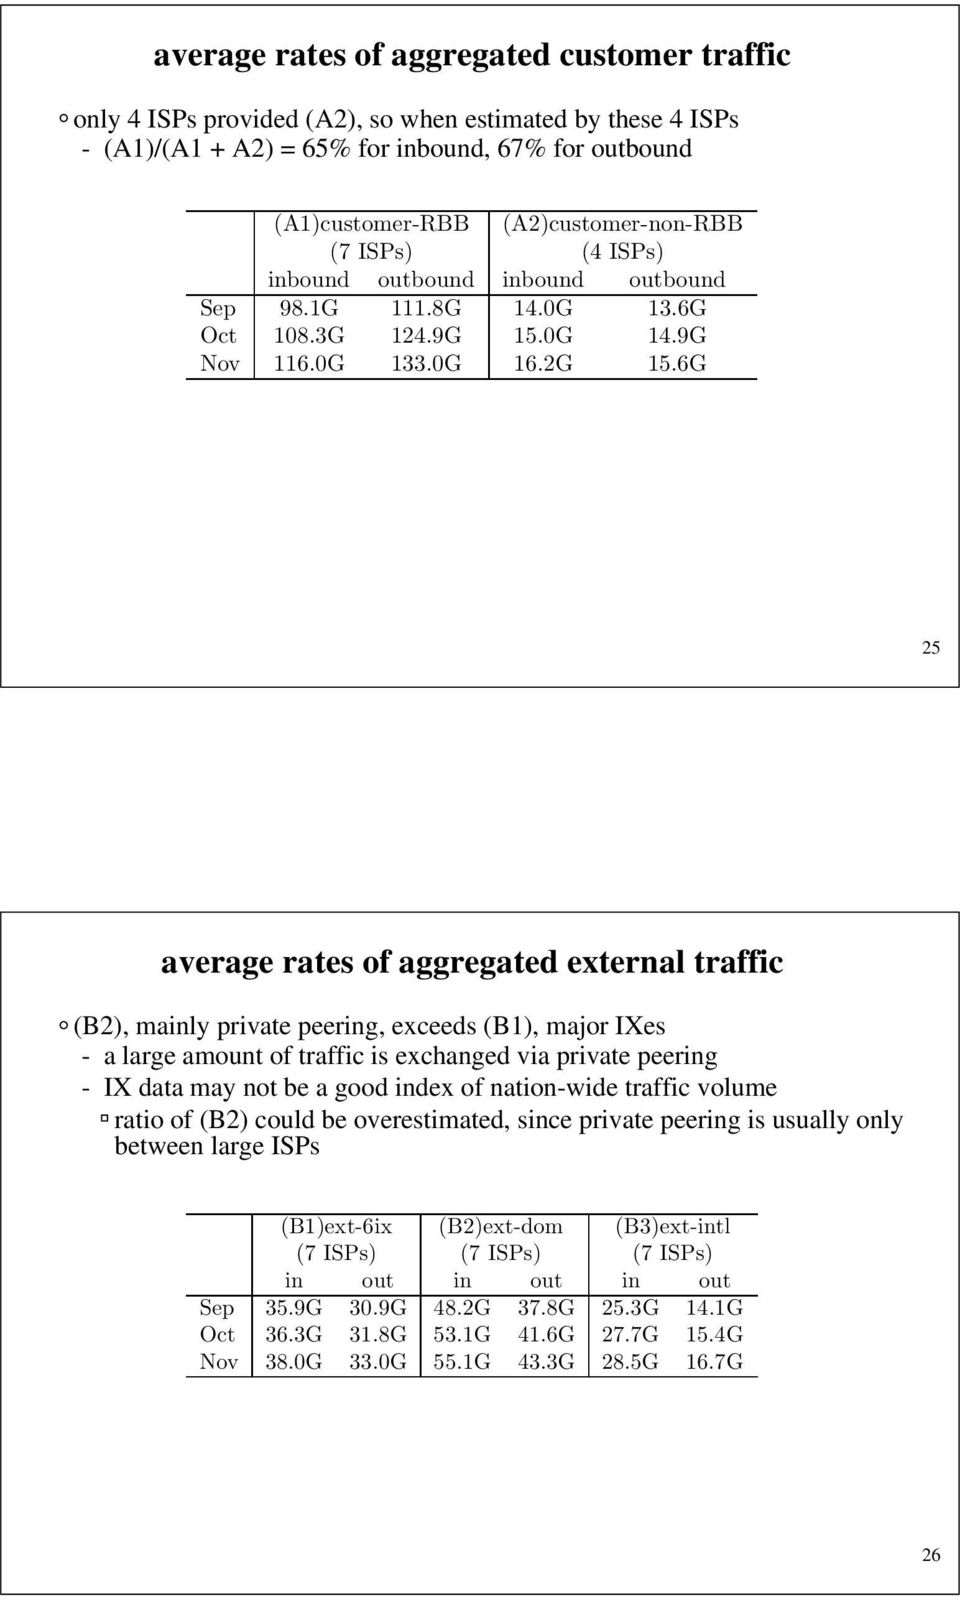 6G 25 average rates of aggregated external traffic (B2), mainly private peering, exceeds (B1), major IXes - a large amount of traffic is exchanged via private peering - IX data may not be a good